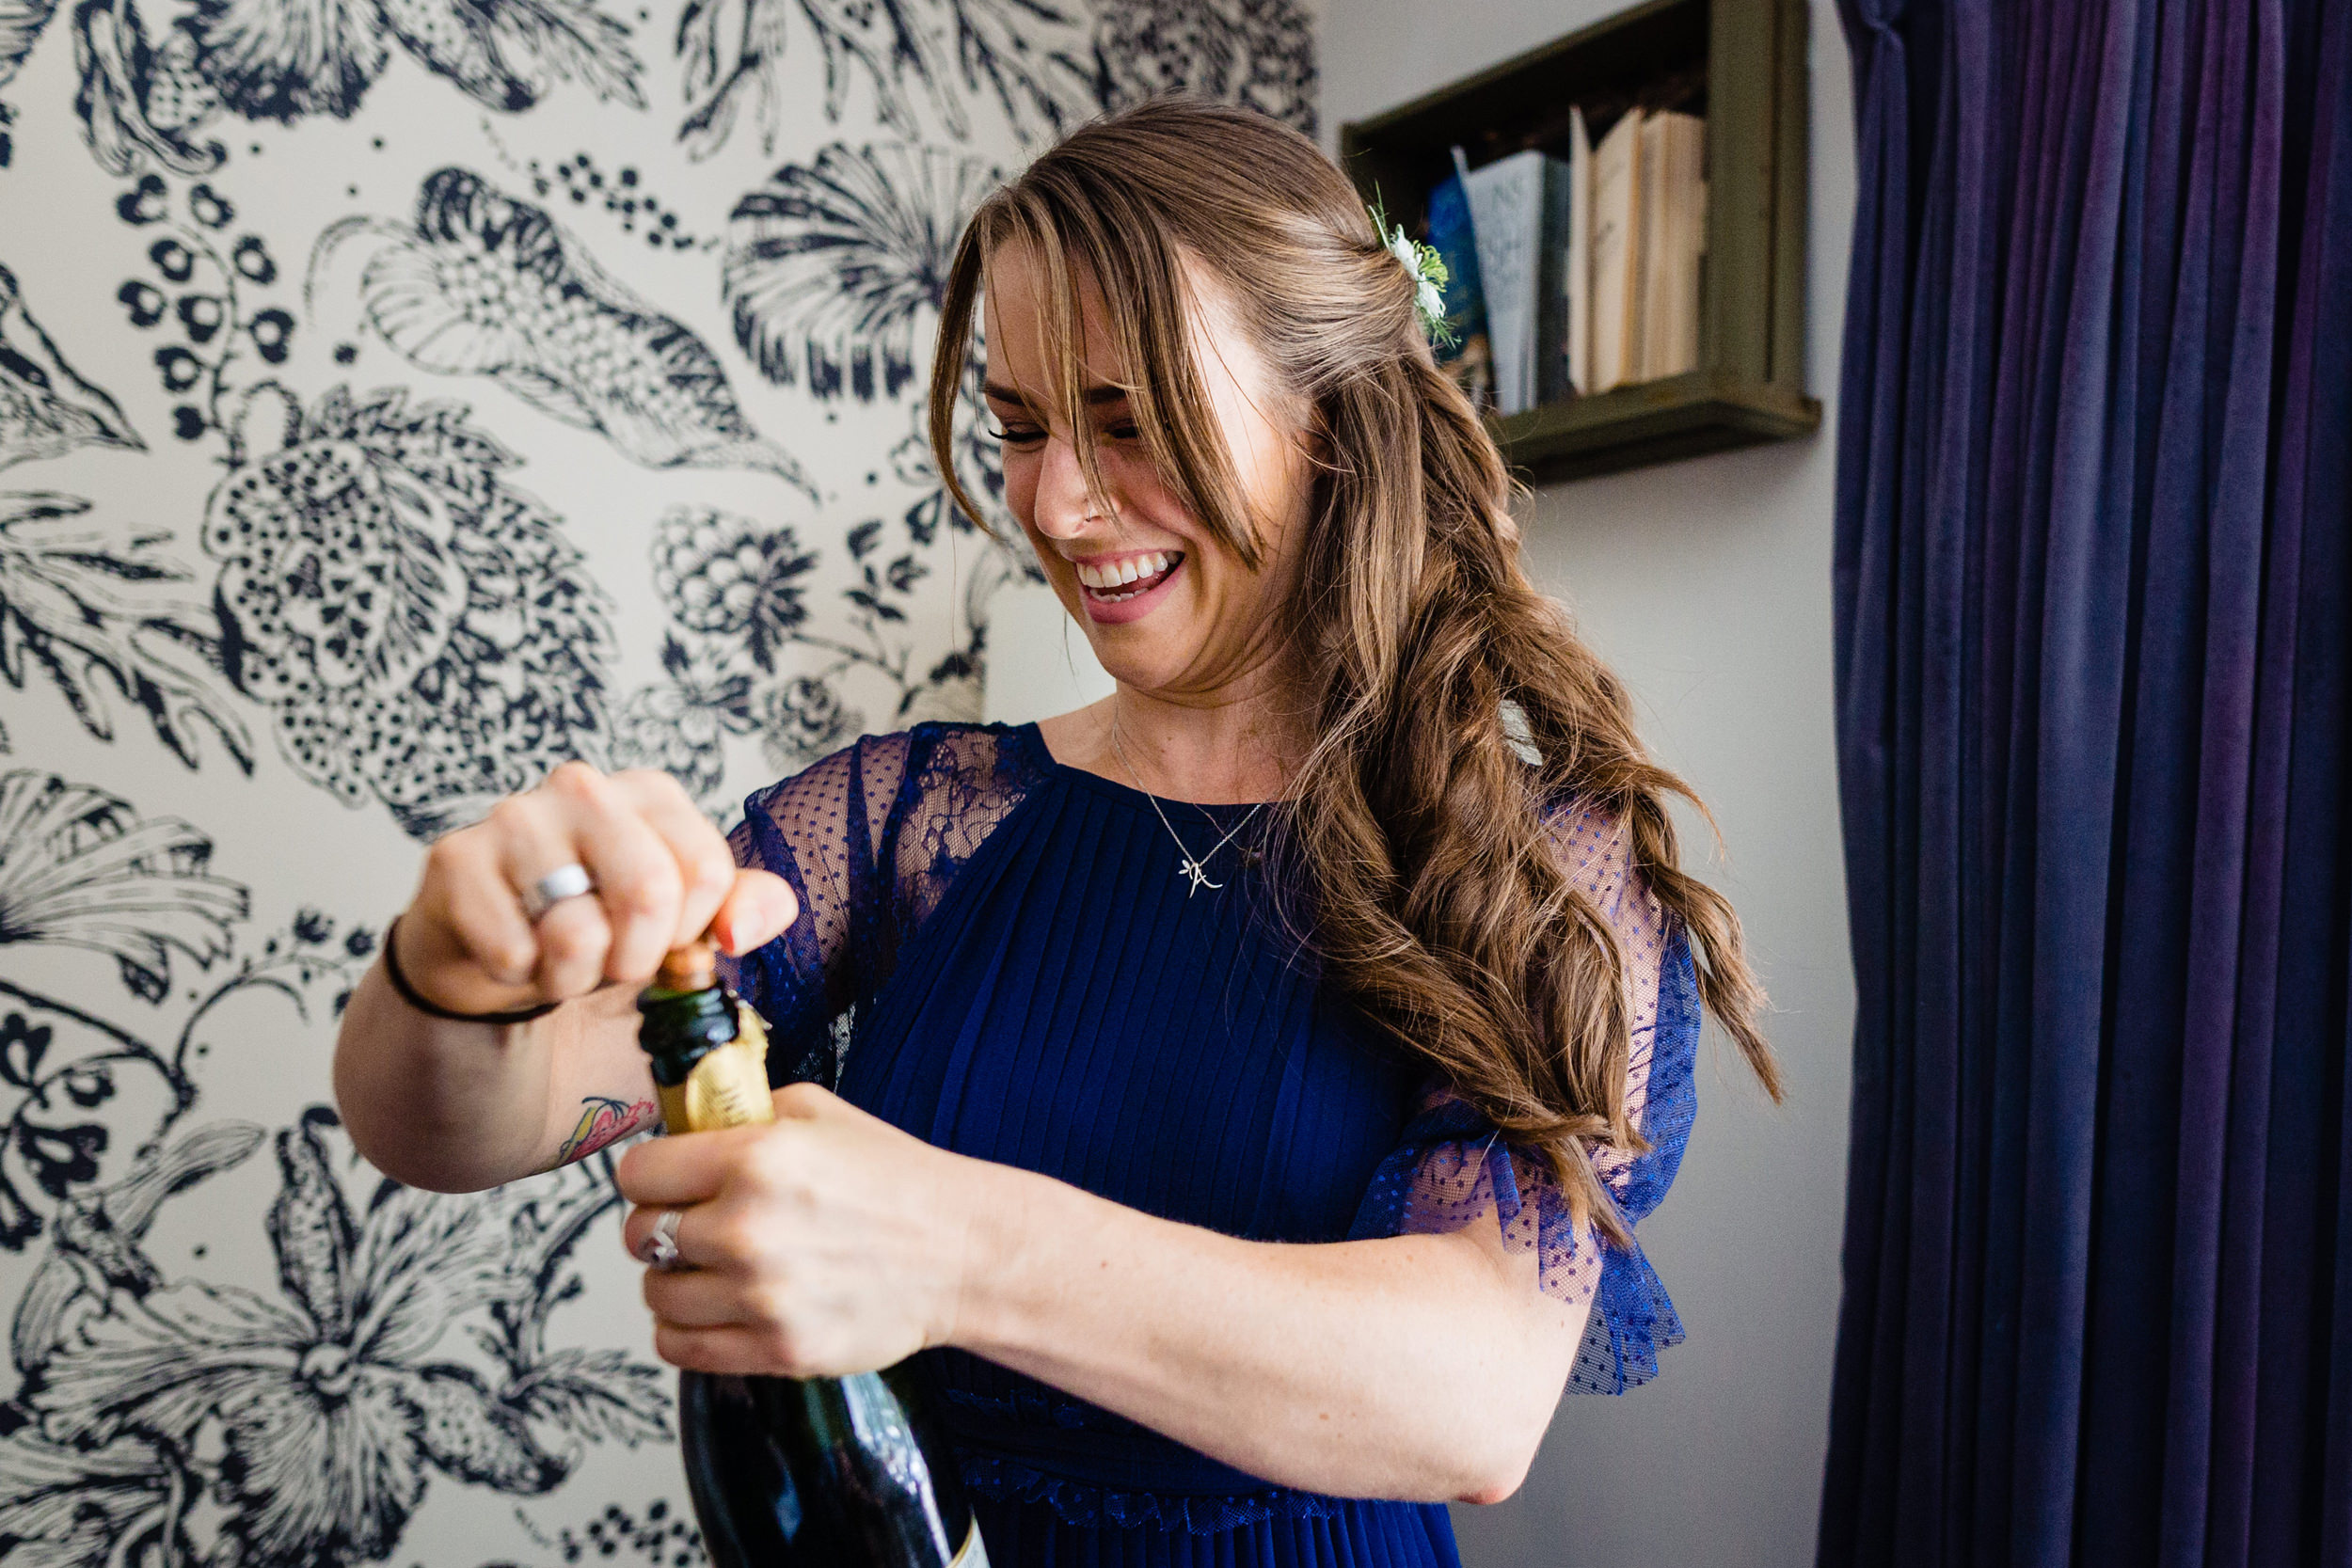 bridesmaid uncorking champagne. maybush wedding co wedding photography by emma and rich.